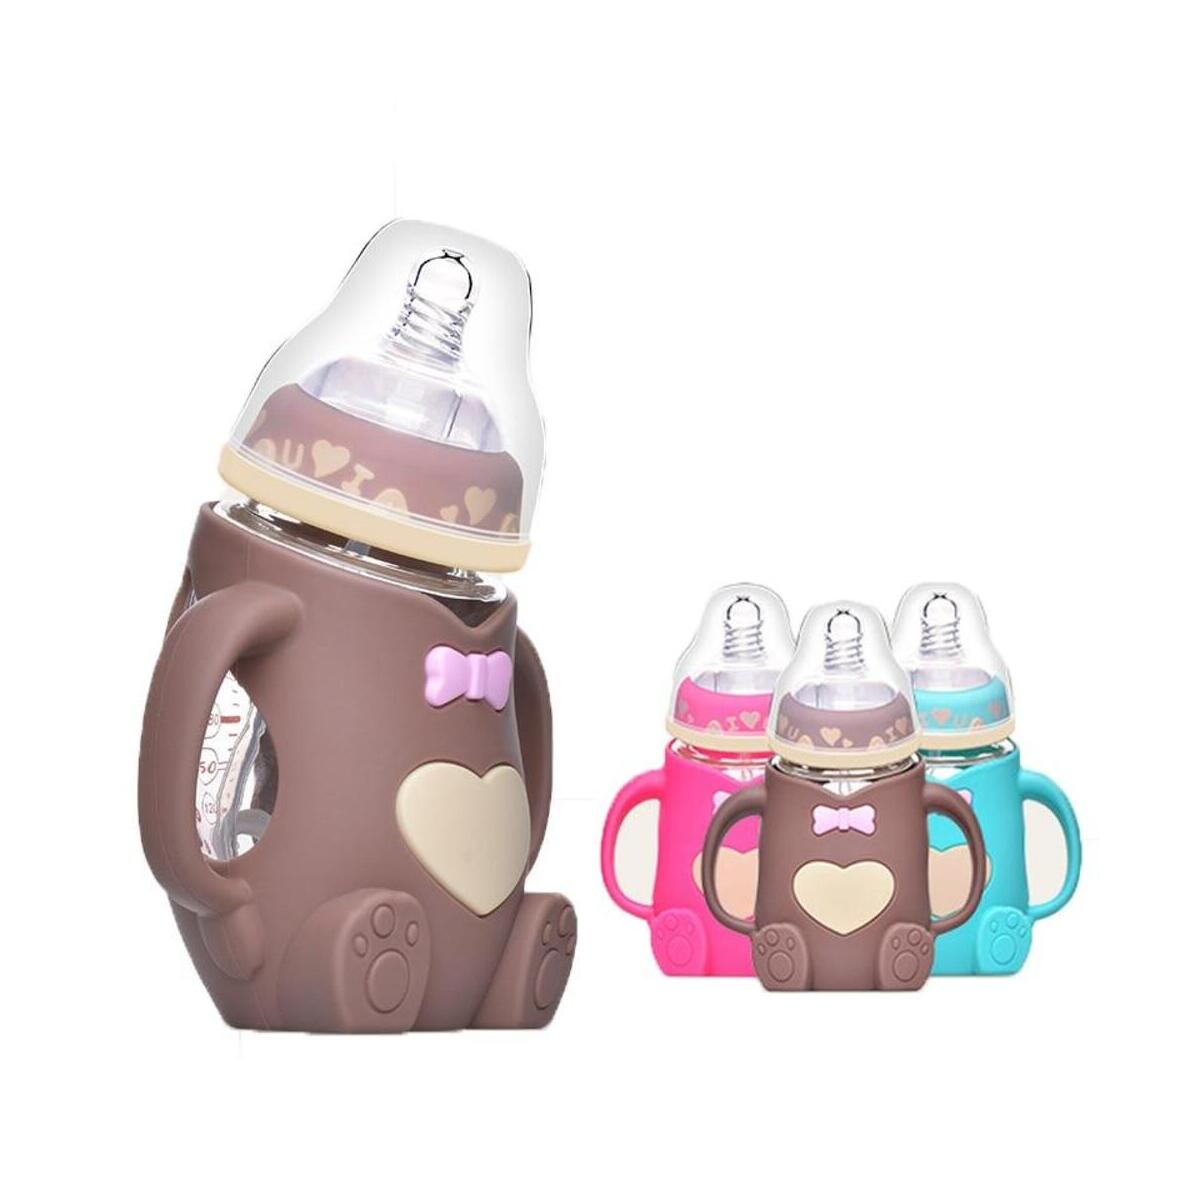 Infant Baby Silicon Crystal Anti-Fall Glass Baby Bottle feeding Glass Bottle Safe Silicone Milk Bottle With Handle